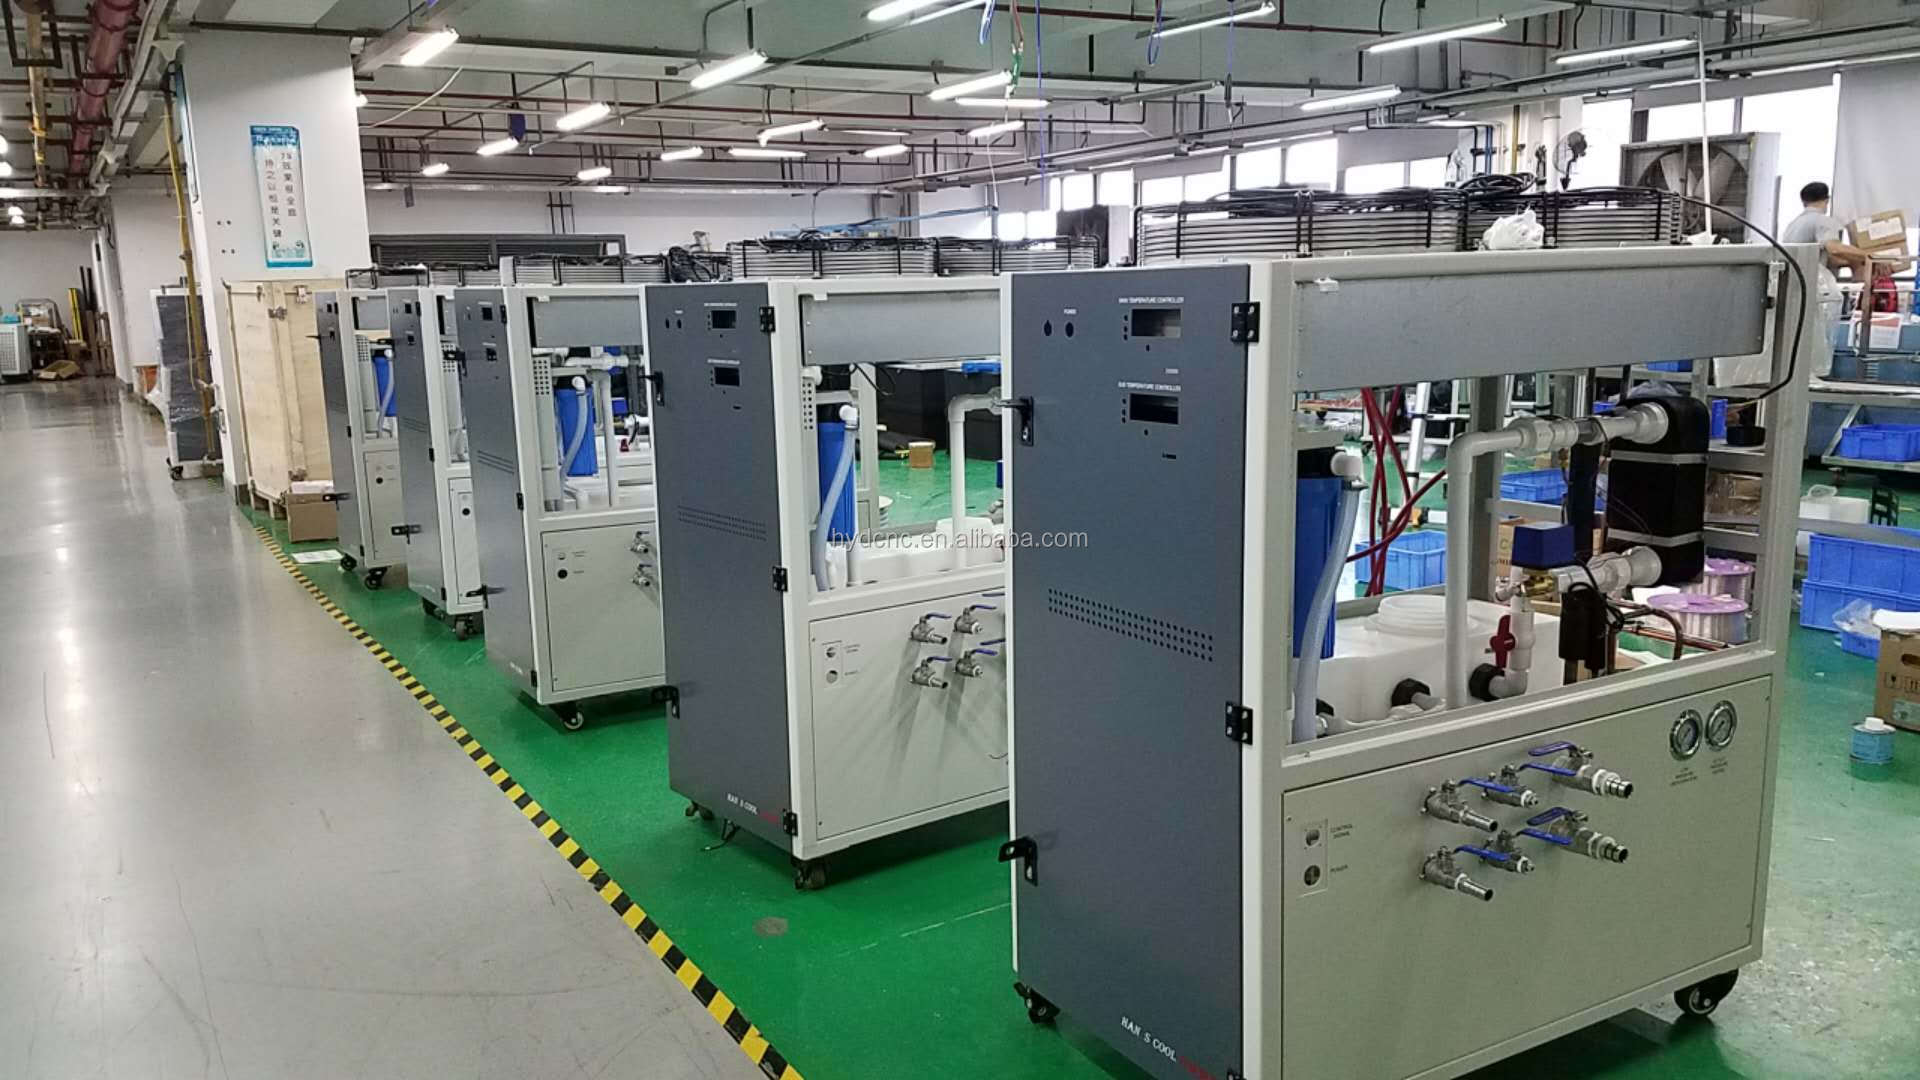 HAN'S Water cooled chiller for1000W fiber laser cutting machine ,fiber laser source